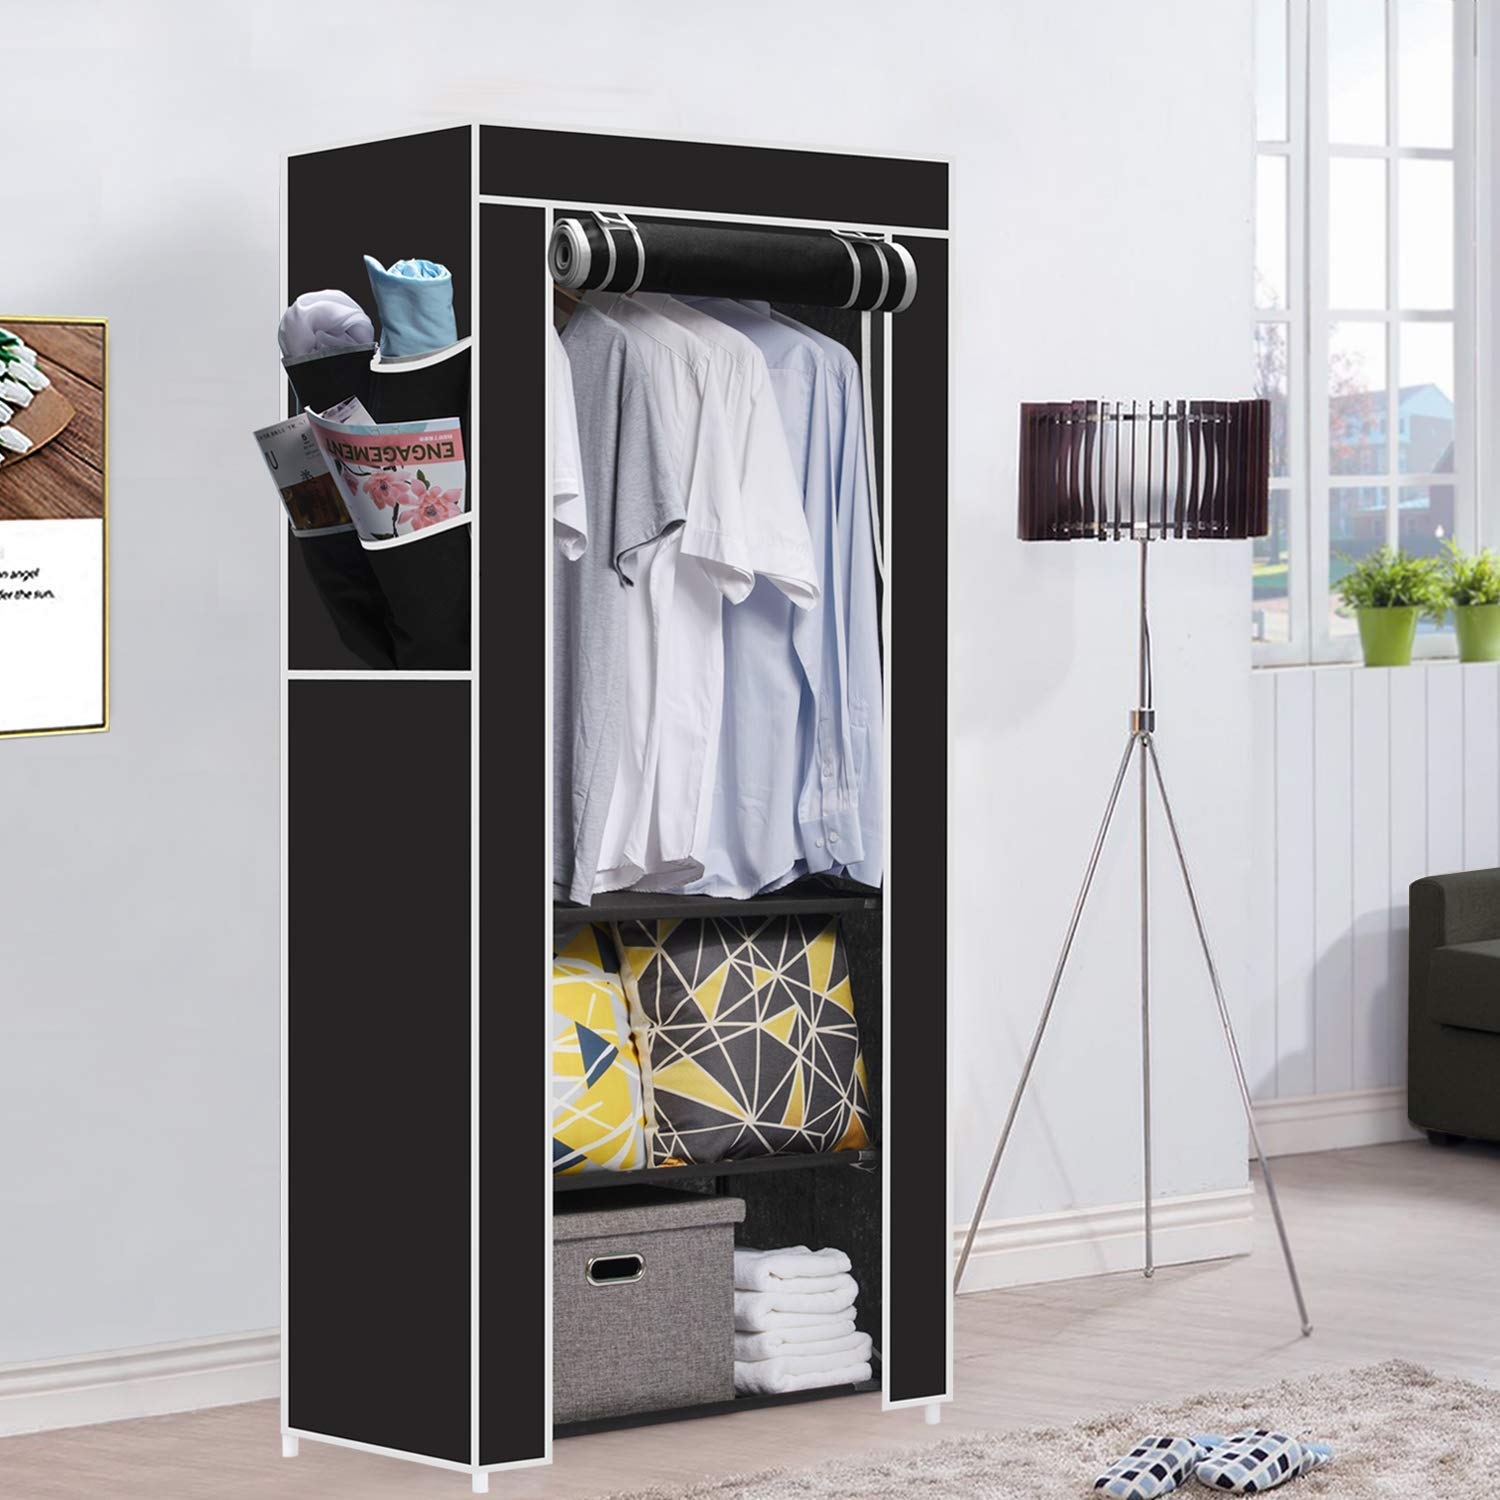 Magnificent Hapilife Single Canvas Wardrobe Clothes Storage Cupboard With 2 Storage Shelves Hanging Rail Bedroom Furniture Black 165 X 70 X 45Cm Home Interior And Landscaping Oversignezvosmurscom